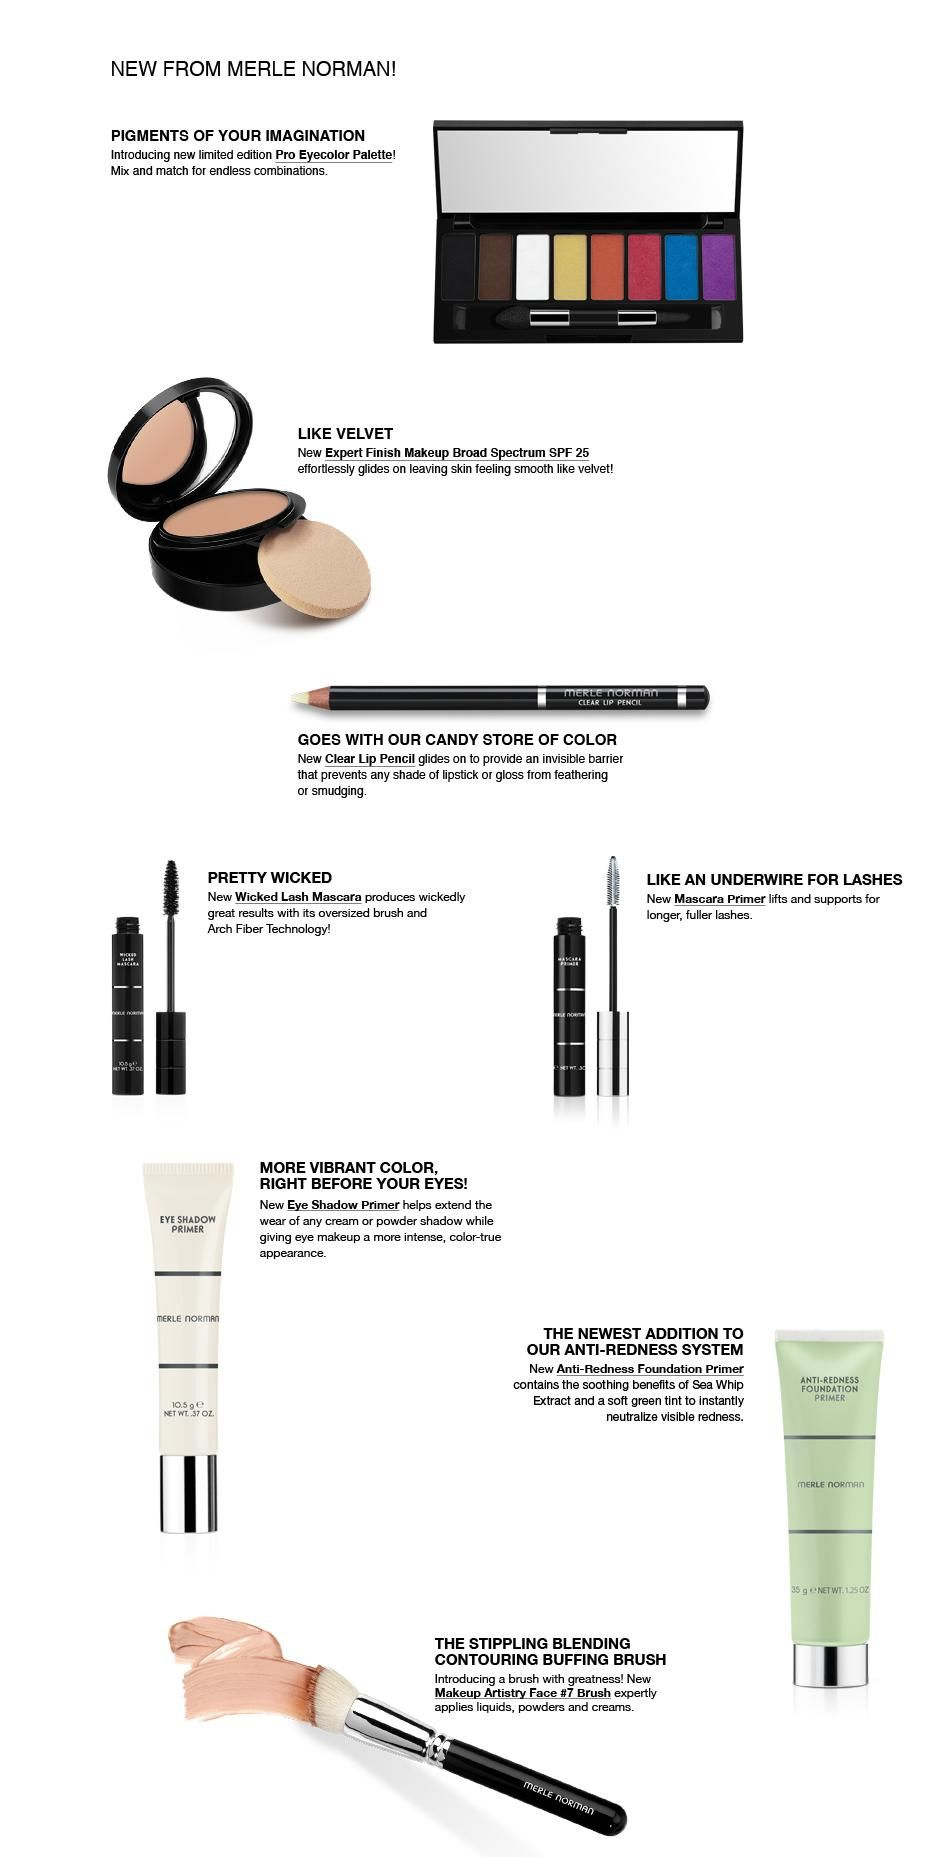 Merle Norman New Makeup Products Merle norman makeup